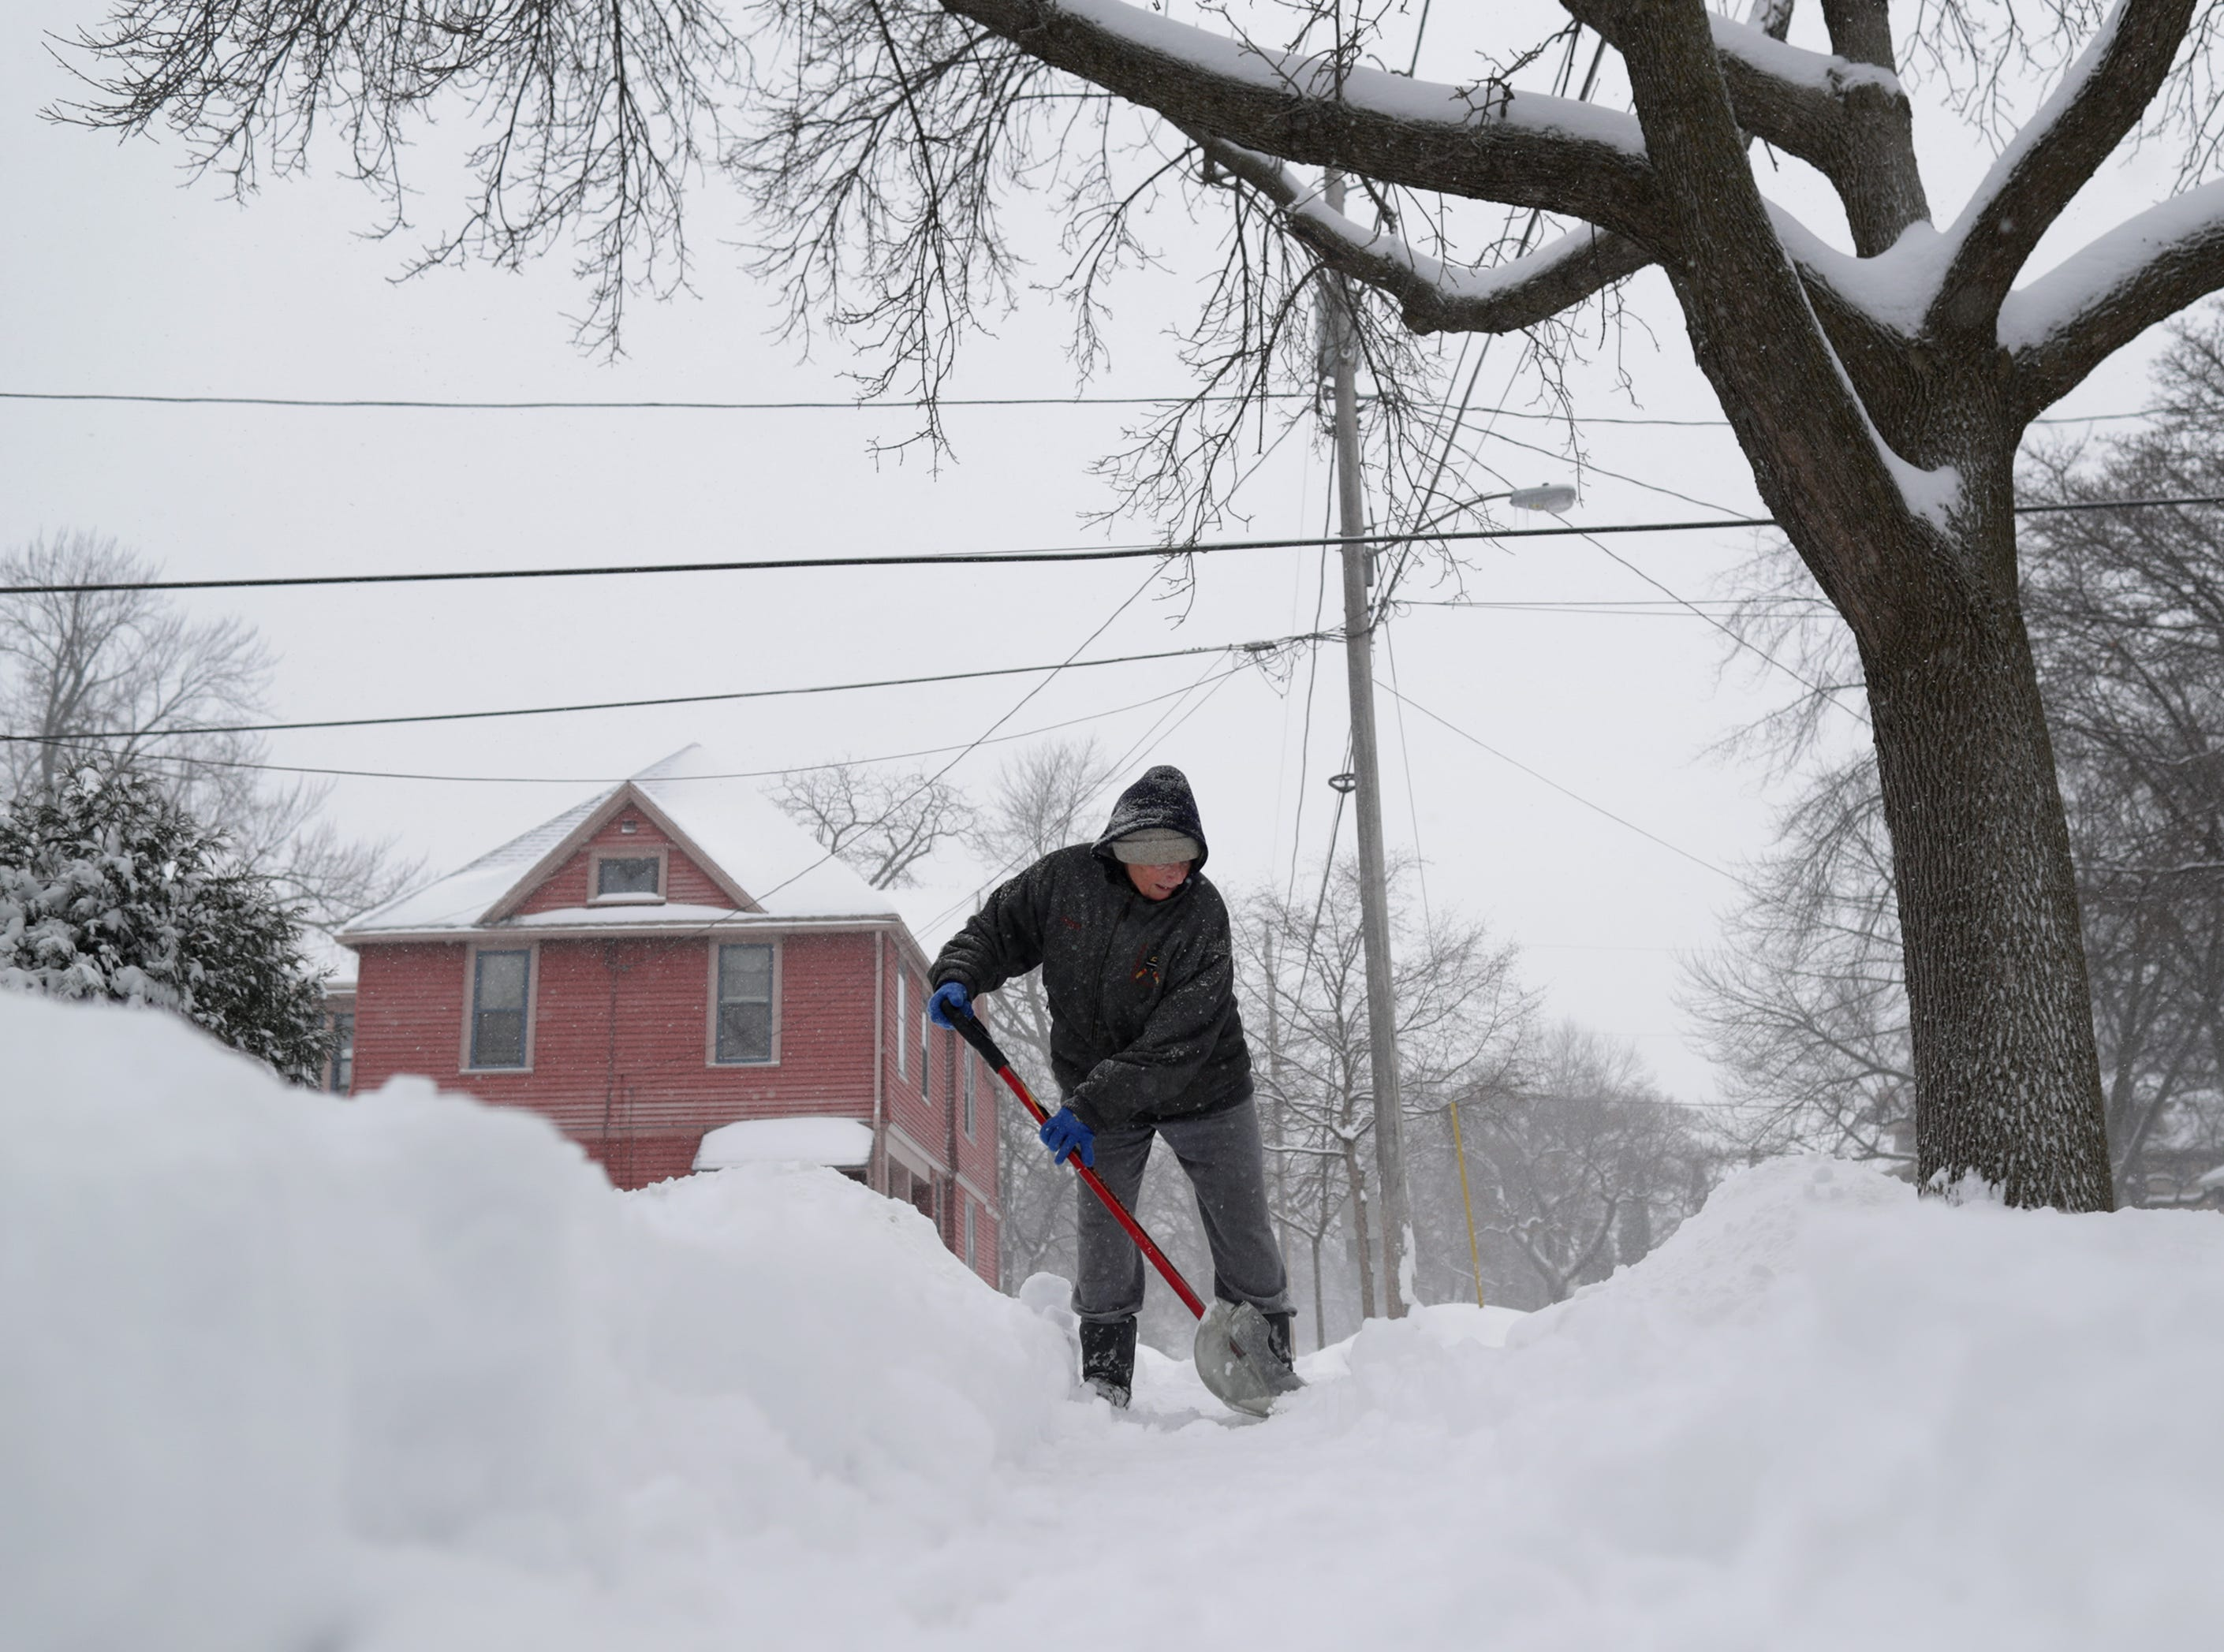 Judy Porter shovels her sidewalk on Tuesday, Feb. 12, 2019, in Appleton, Wis. The latest snow storm to move through the state dropped several inches of snow overnight, 6 to 12 inches are expected by Tuesday evening.